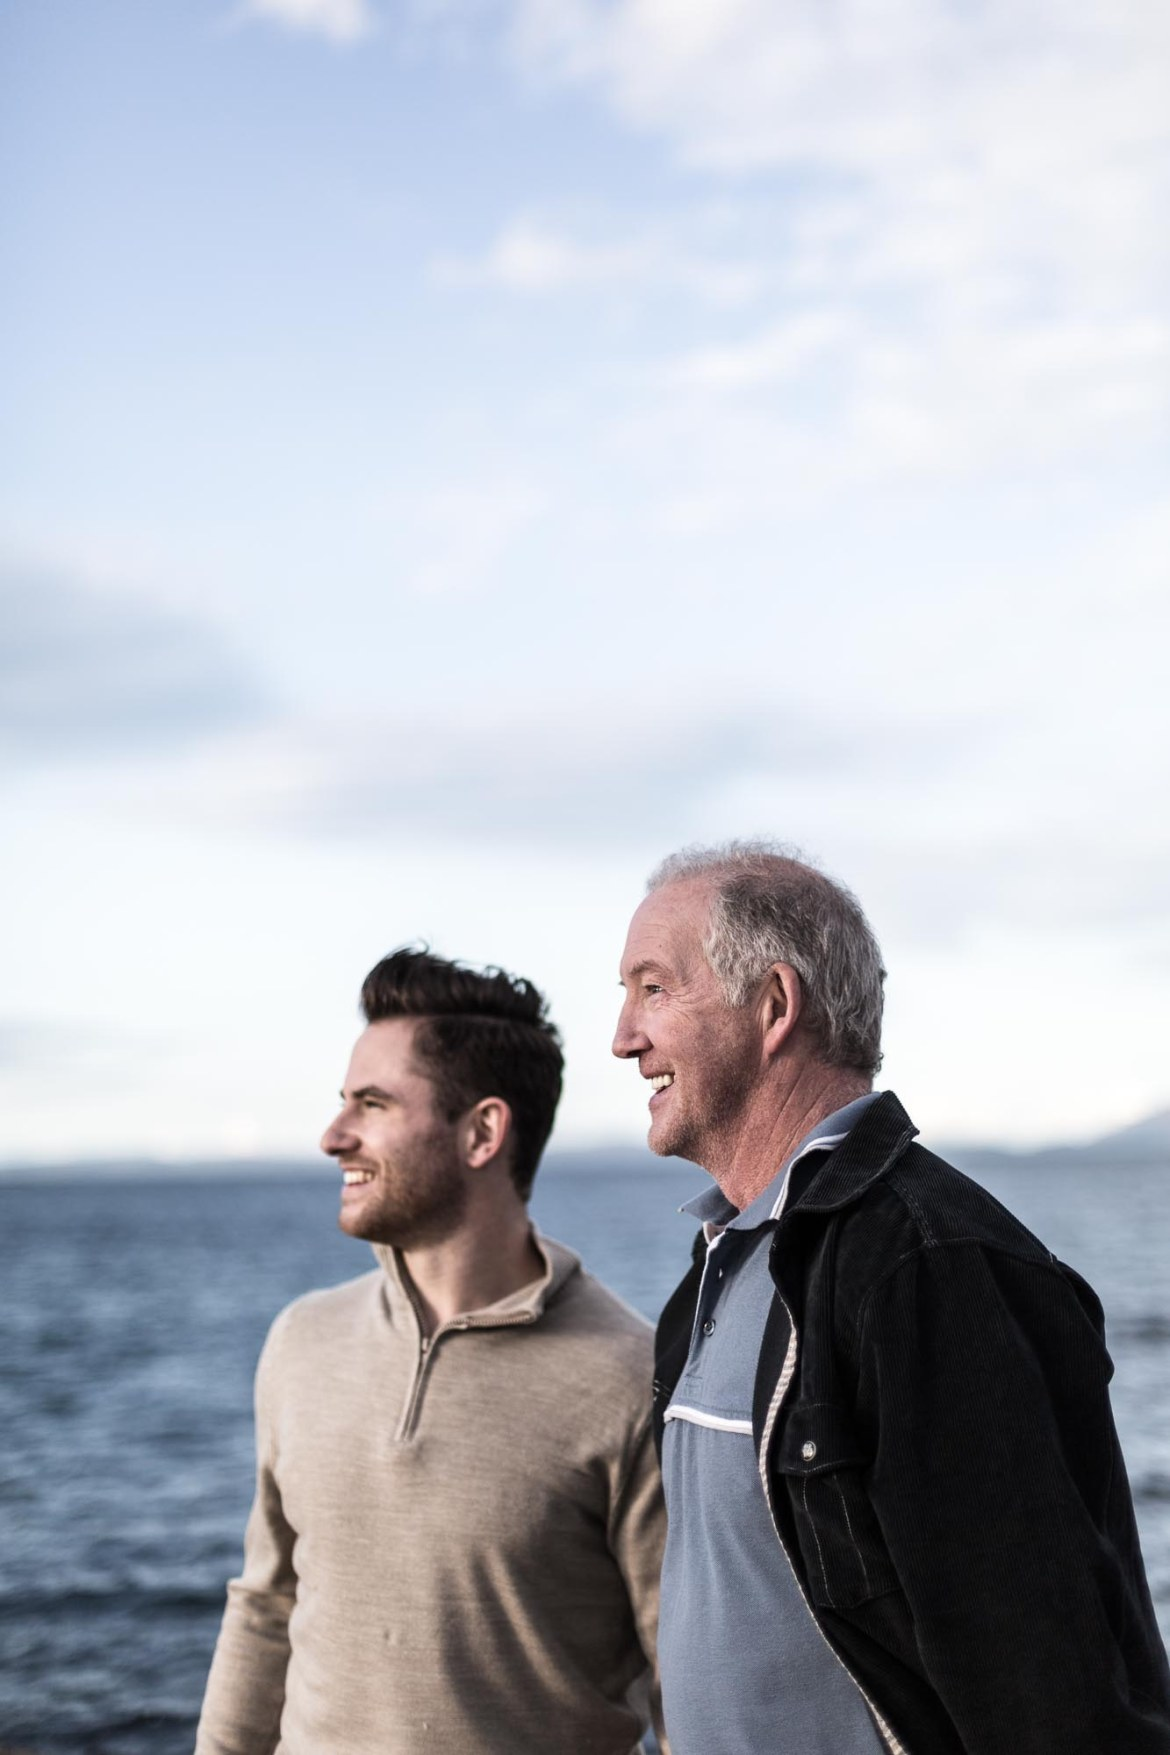 Portrait photography of a father and son on a beach